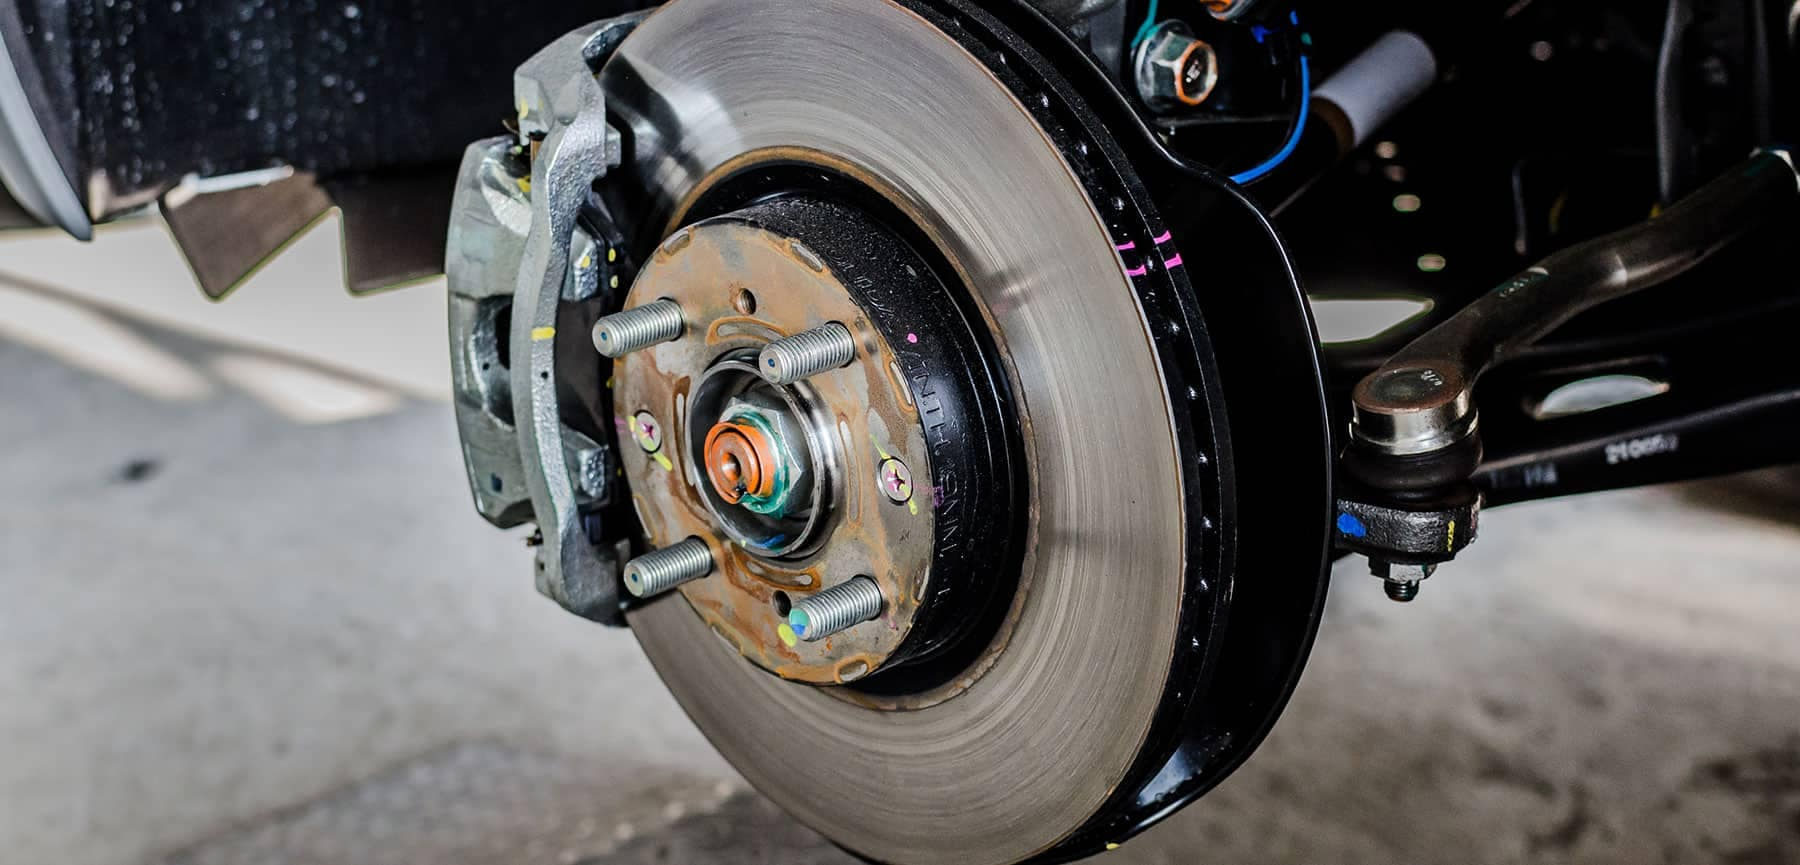 A close up of rotors on a vehicle